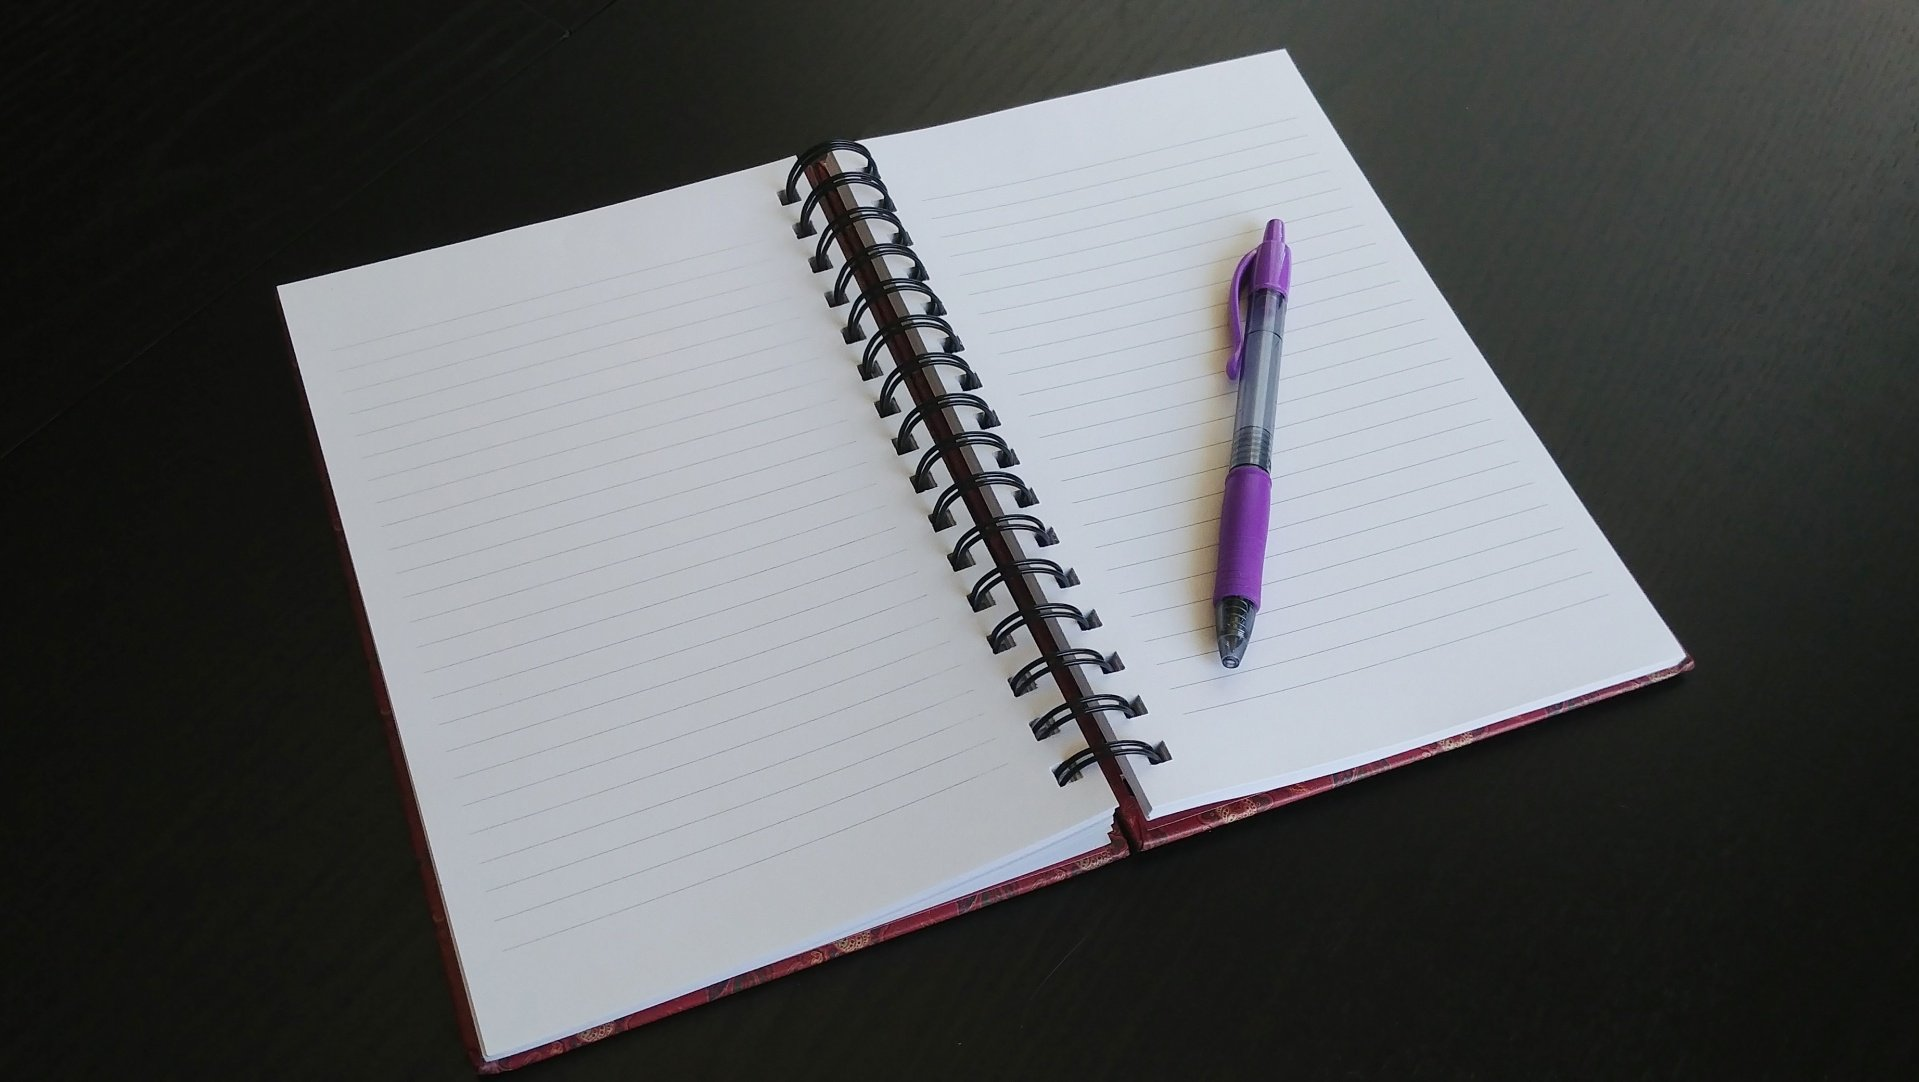 Notebook and Exercise book manufacturing business - How to